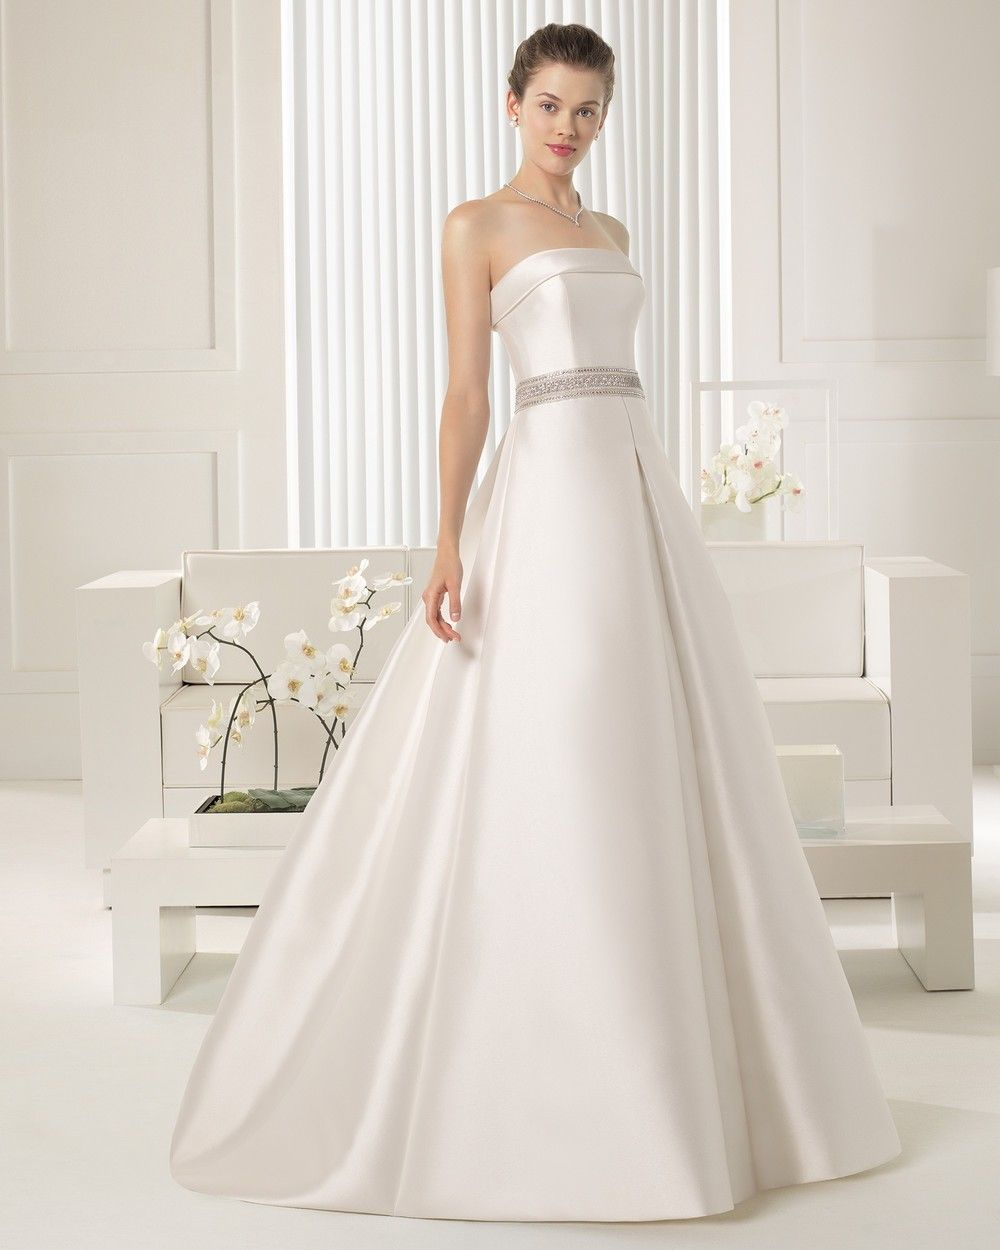 Laudable sweep train aline strapless wedding dress with cape and